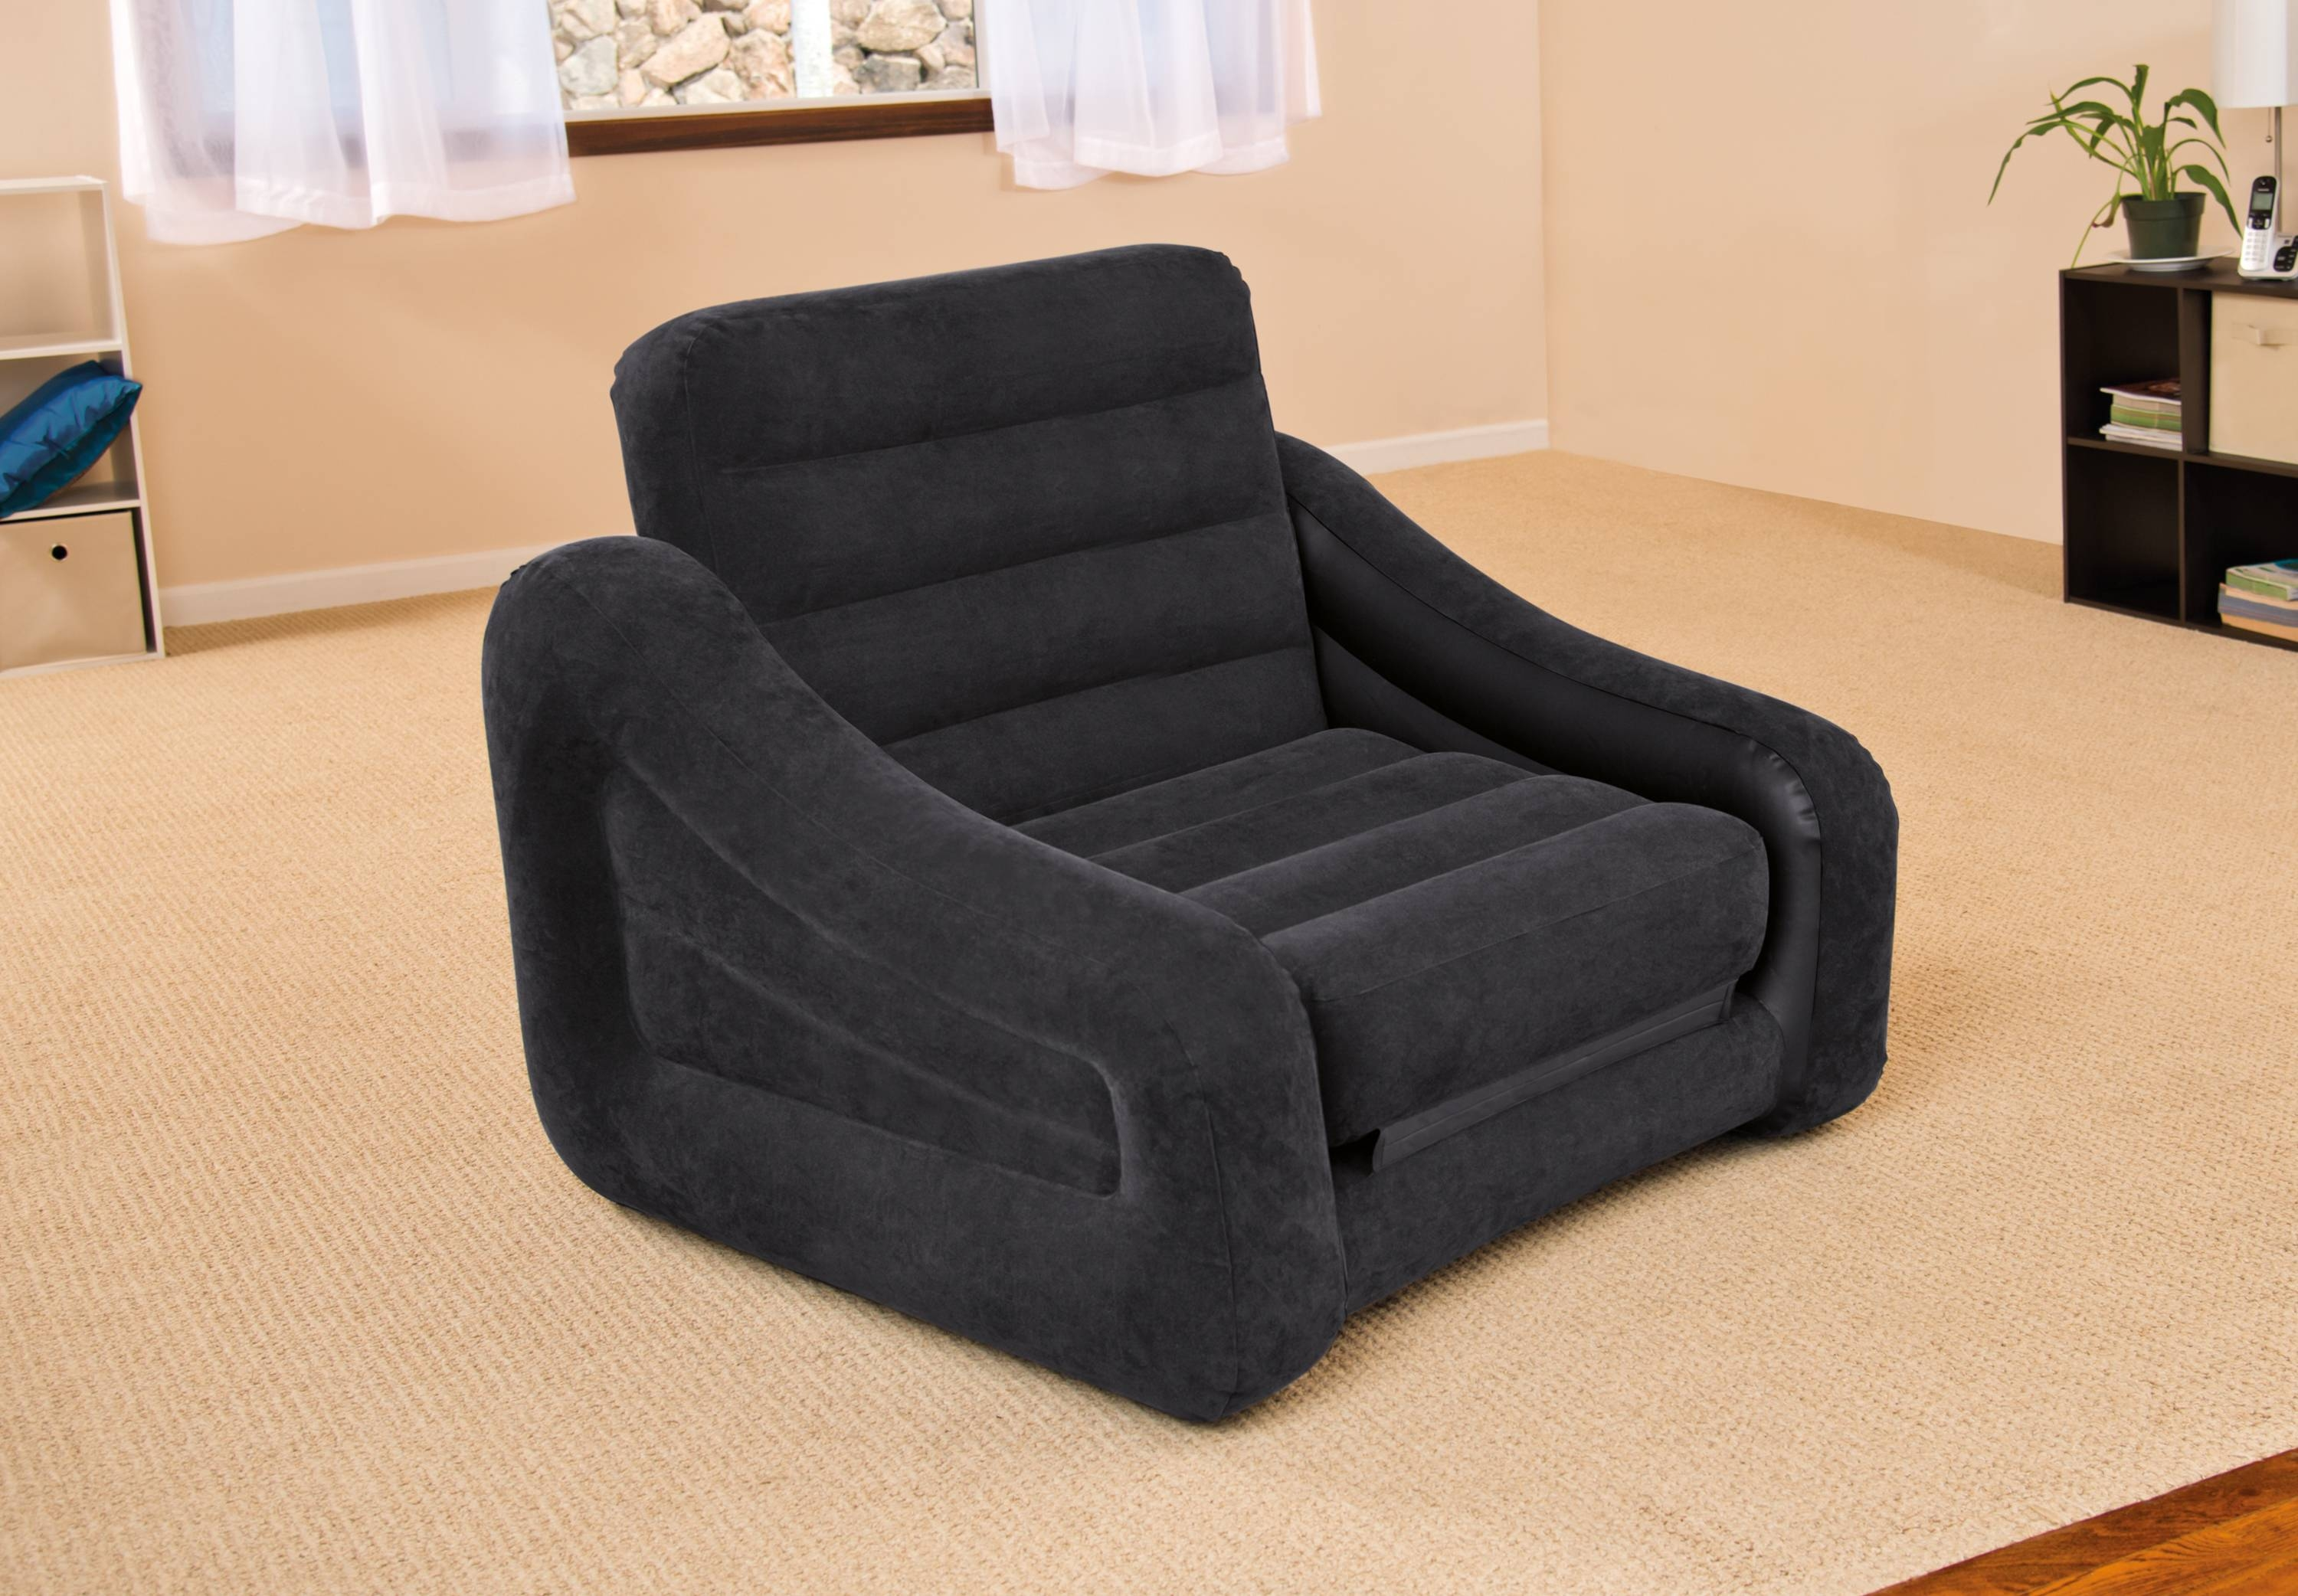 Intex Inflatable Air Chair With Pull Out Twin Bed Mattress Sleeper inside Intex Pull Out Chairs (Image 6 of 15)